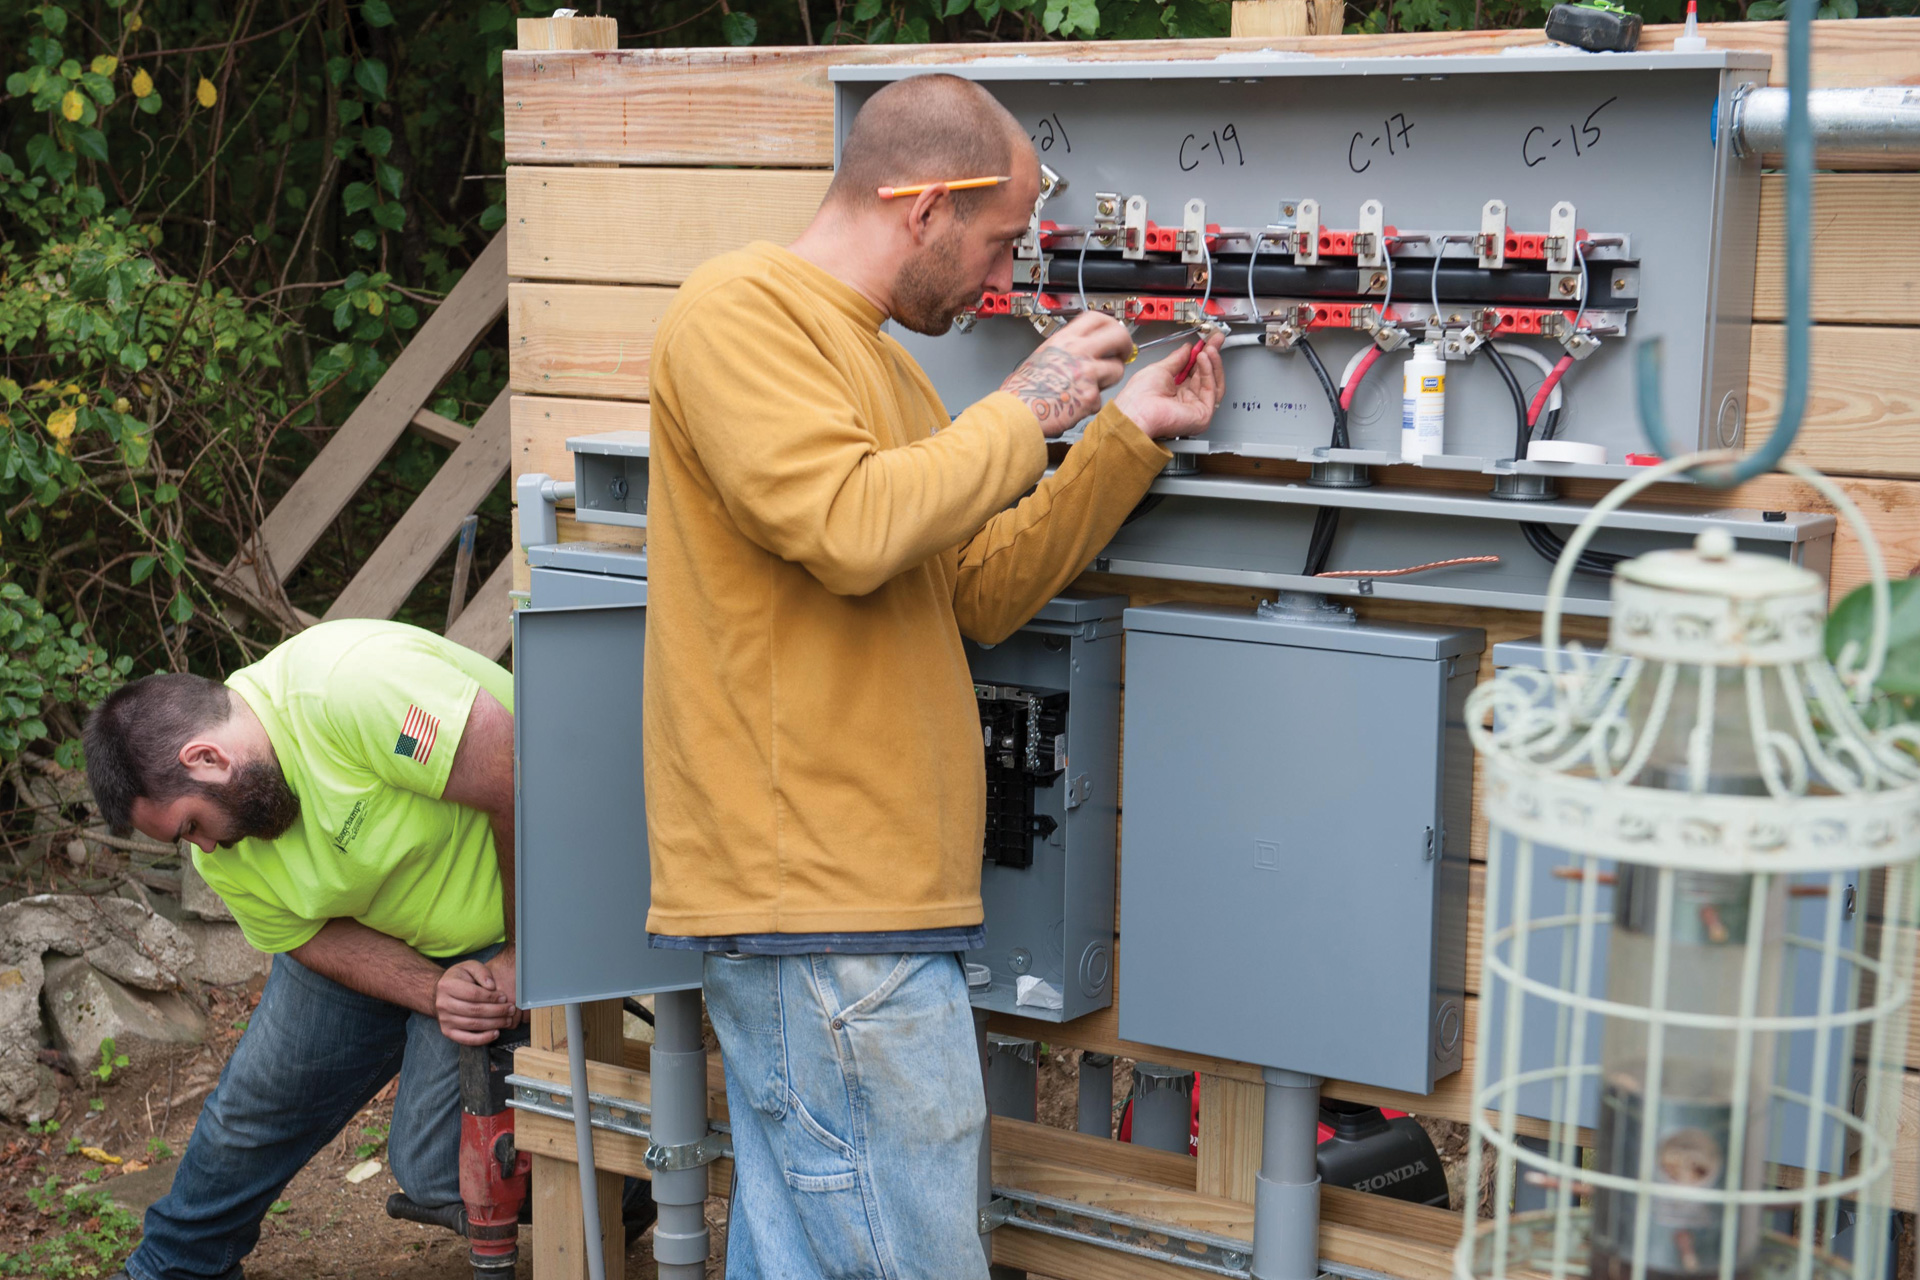 Two men install an electrical panel